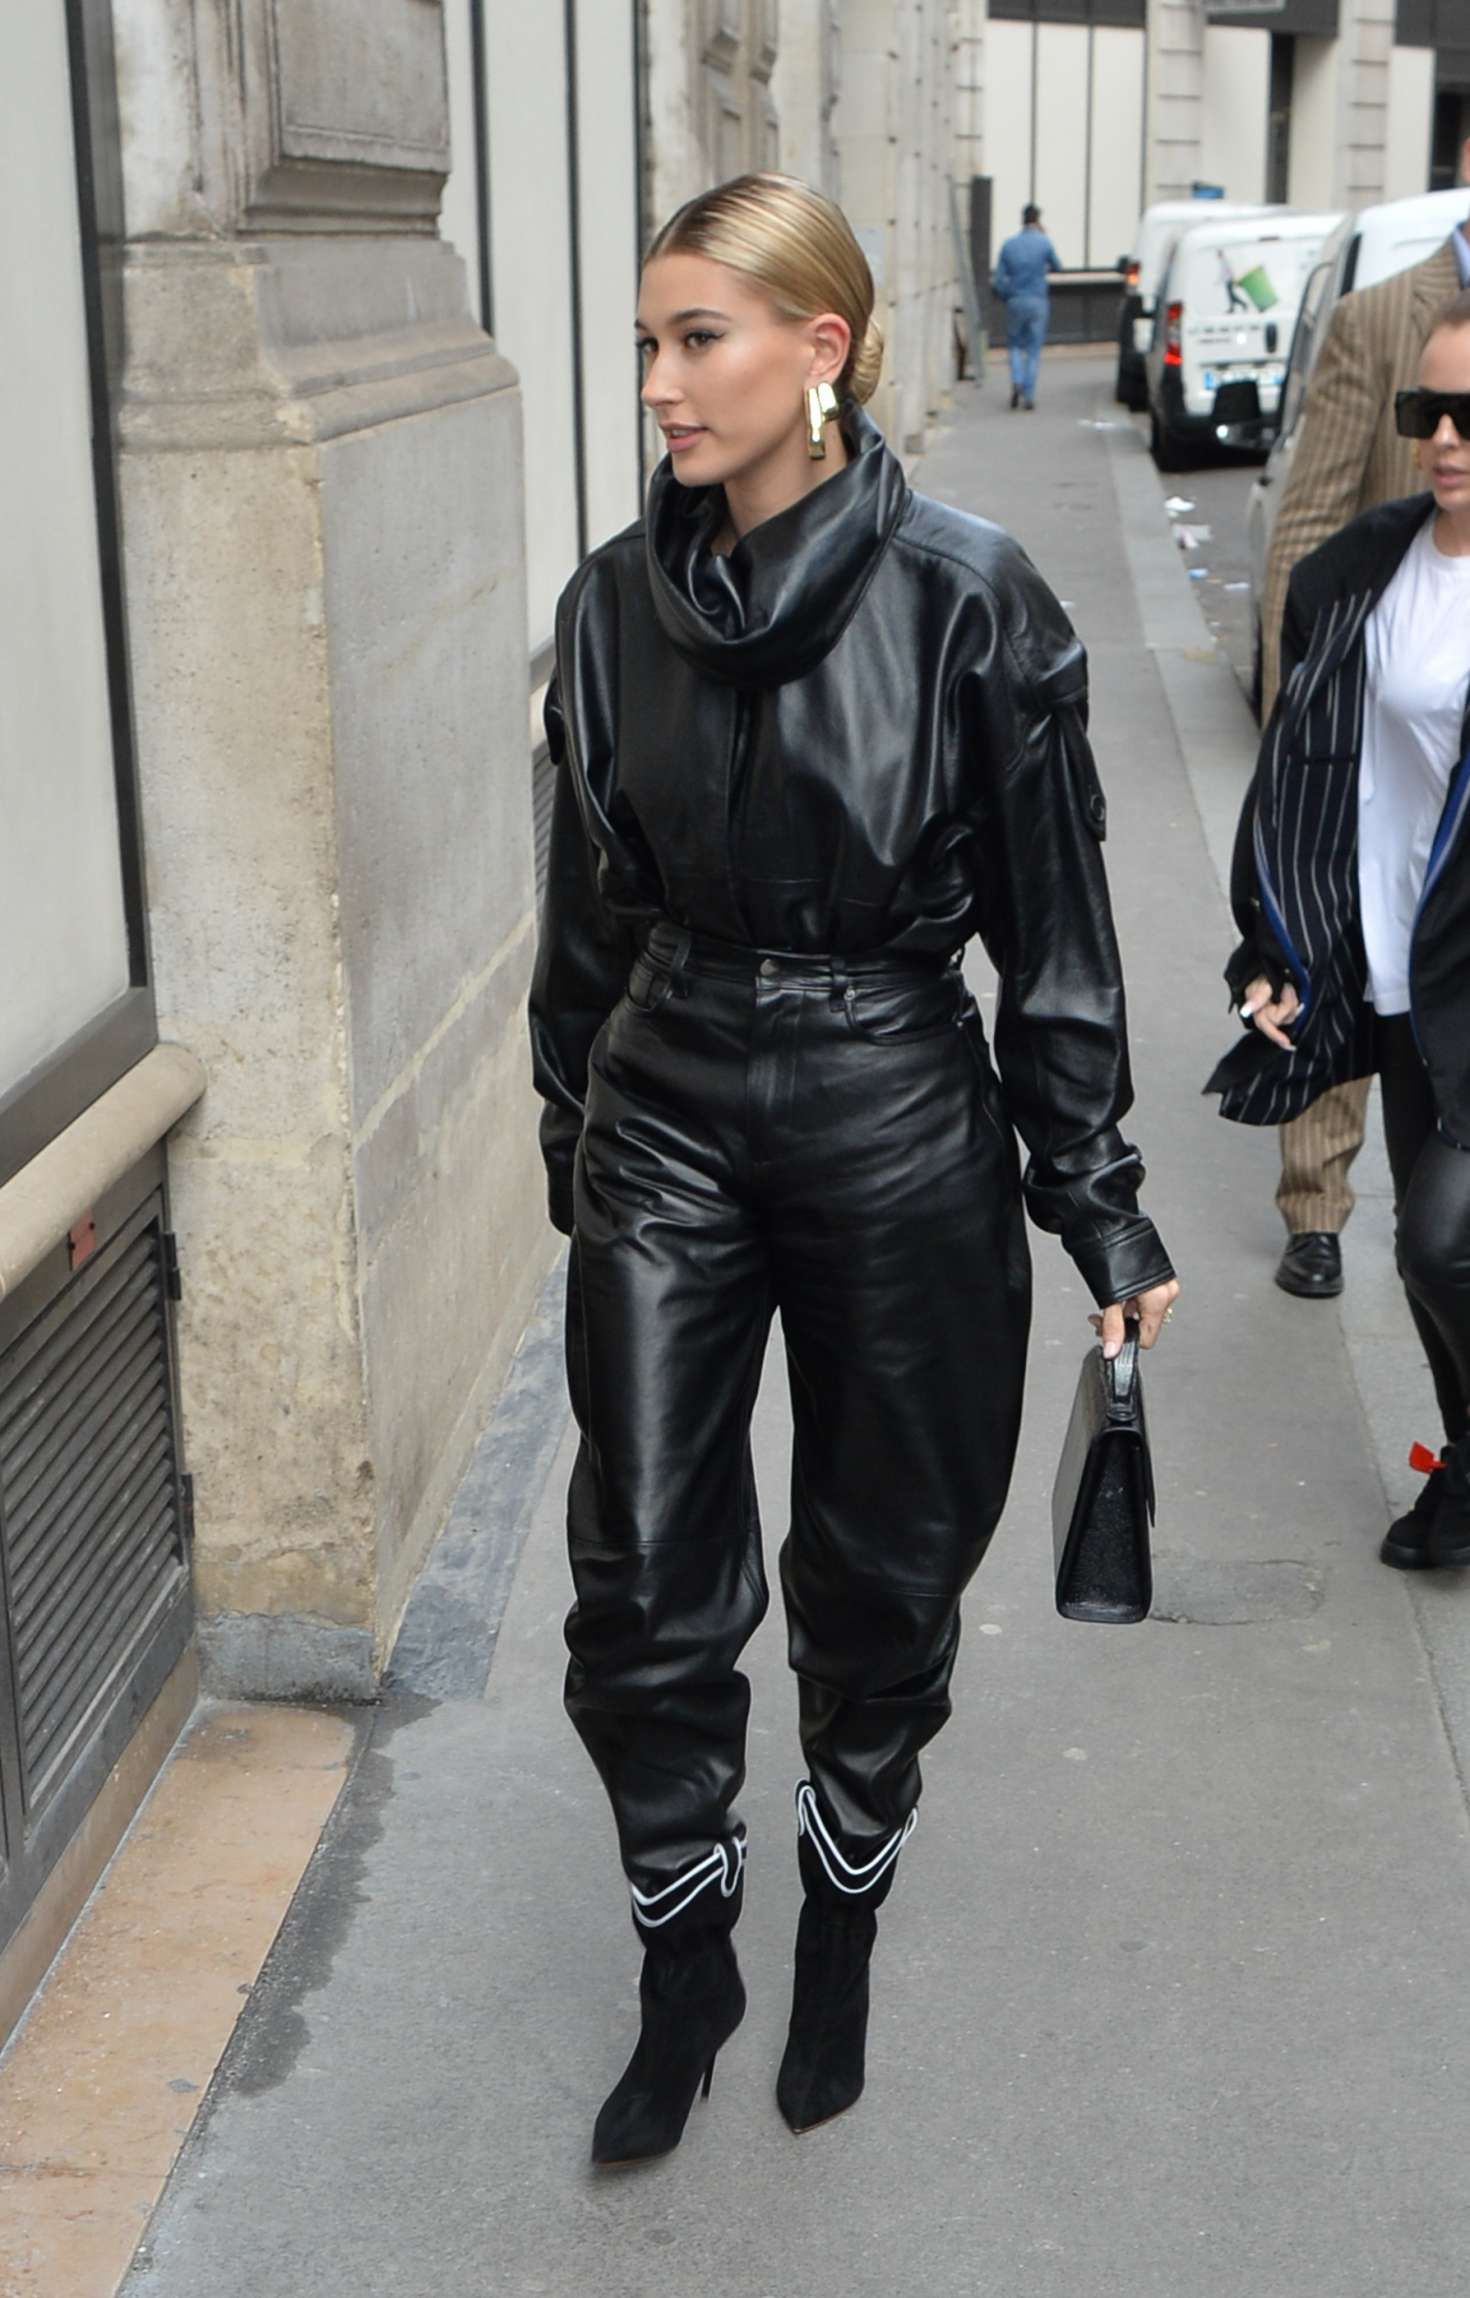 Photo 05: Hailey Baldwin in black leather jacket and pants